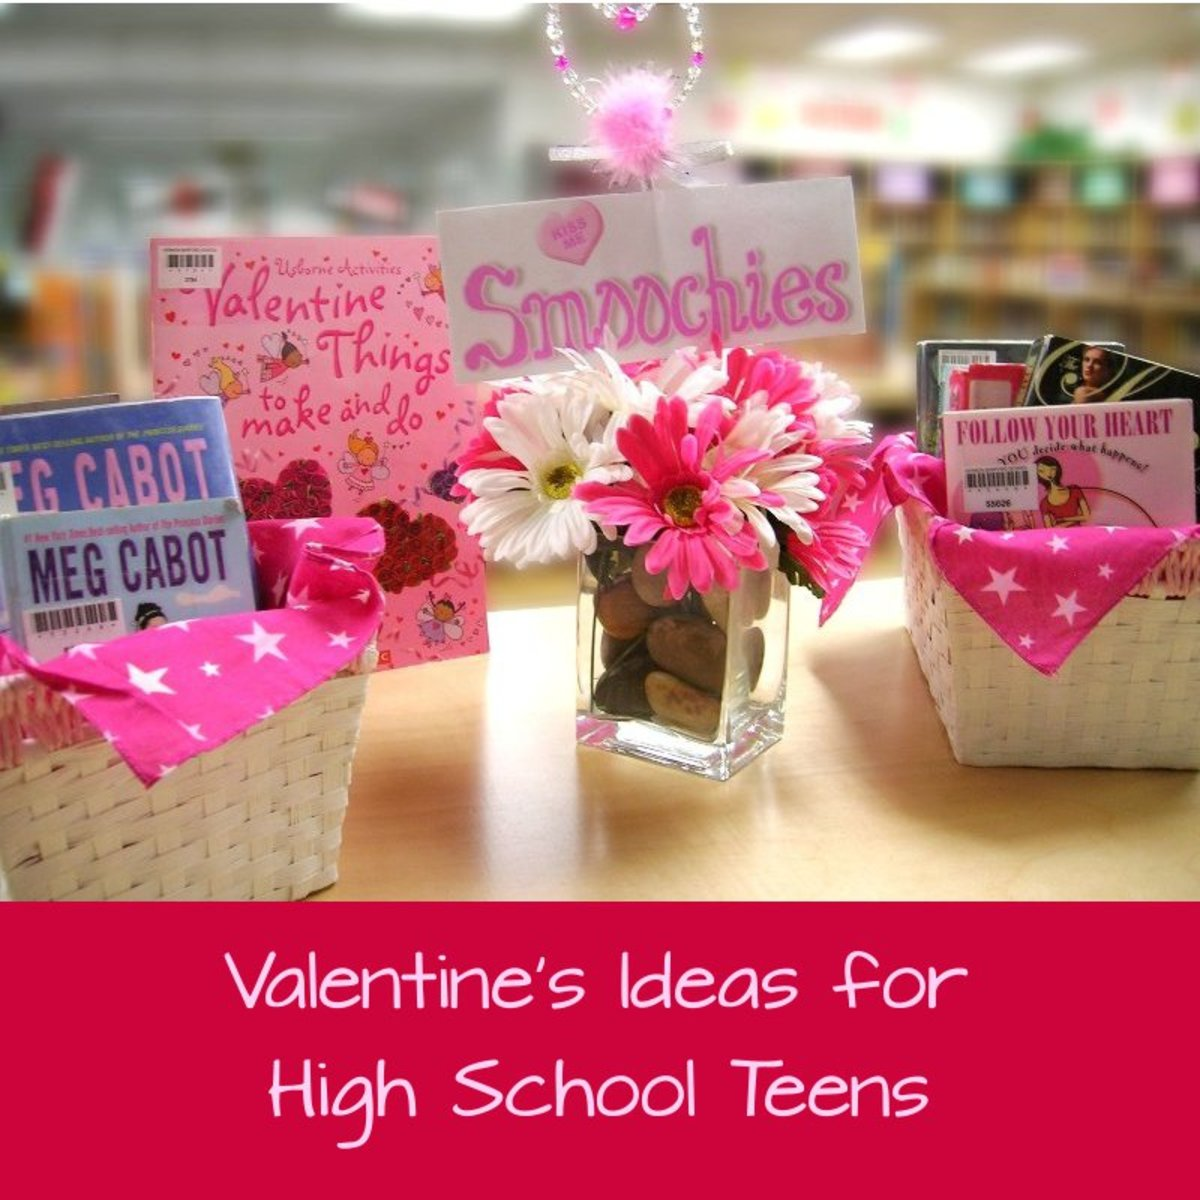 Looking for some great ideas for how to celebrate Valentine's Day at high school this year? Since it's a Friday in 2014, you should be able to prepare for a romantic date with your sweetheart this year! Make it memorable with some of these ideas.